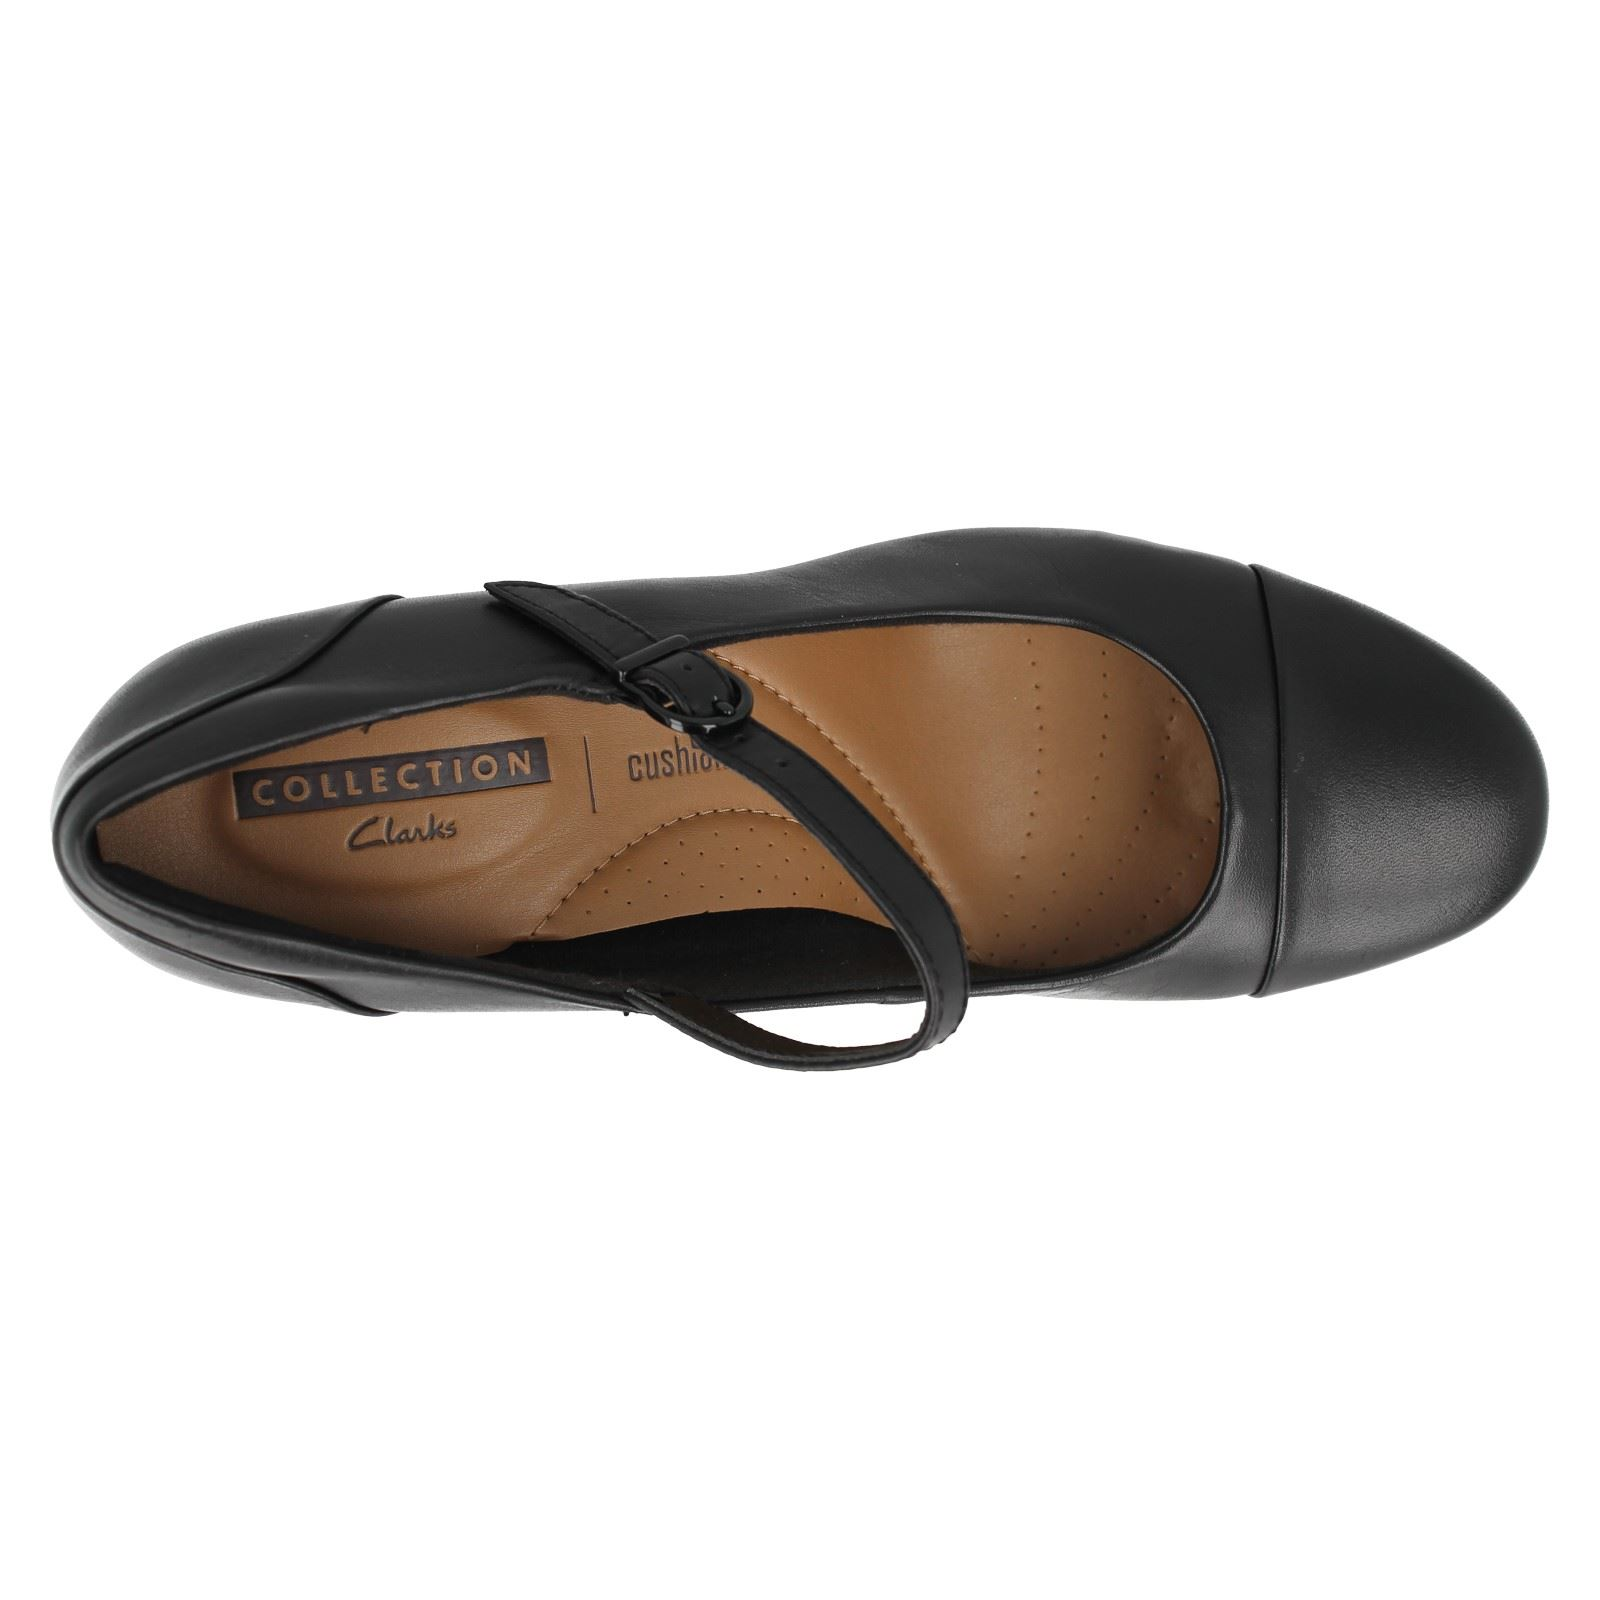 Ladies Clarks Court Shoes Style Garnit Tianna ~ N